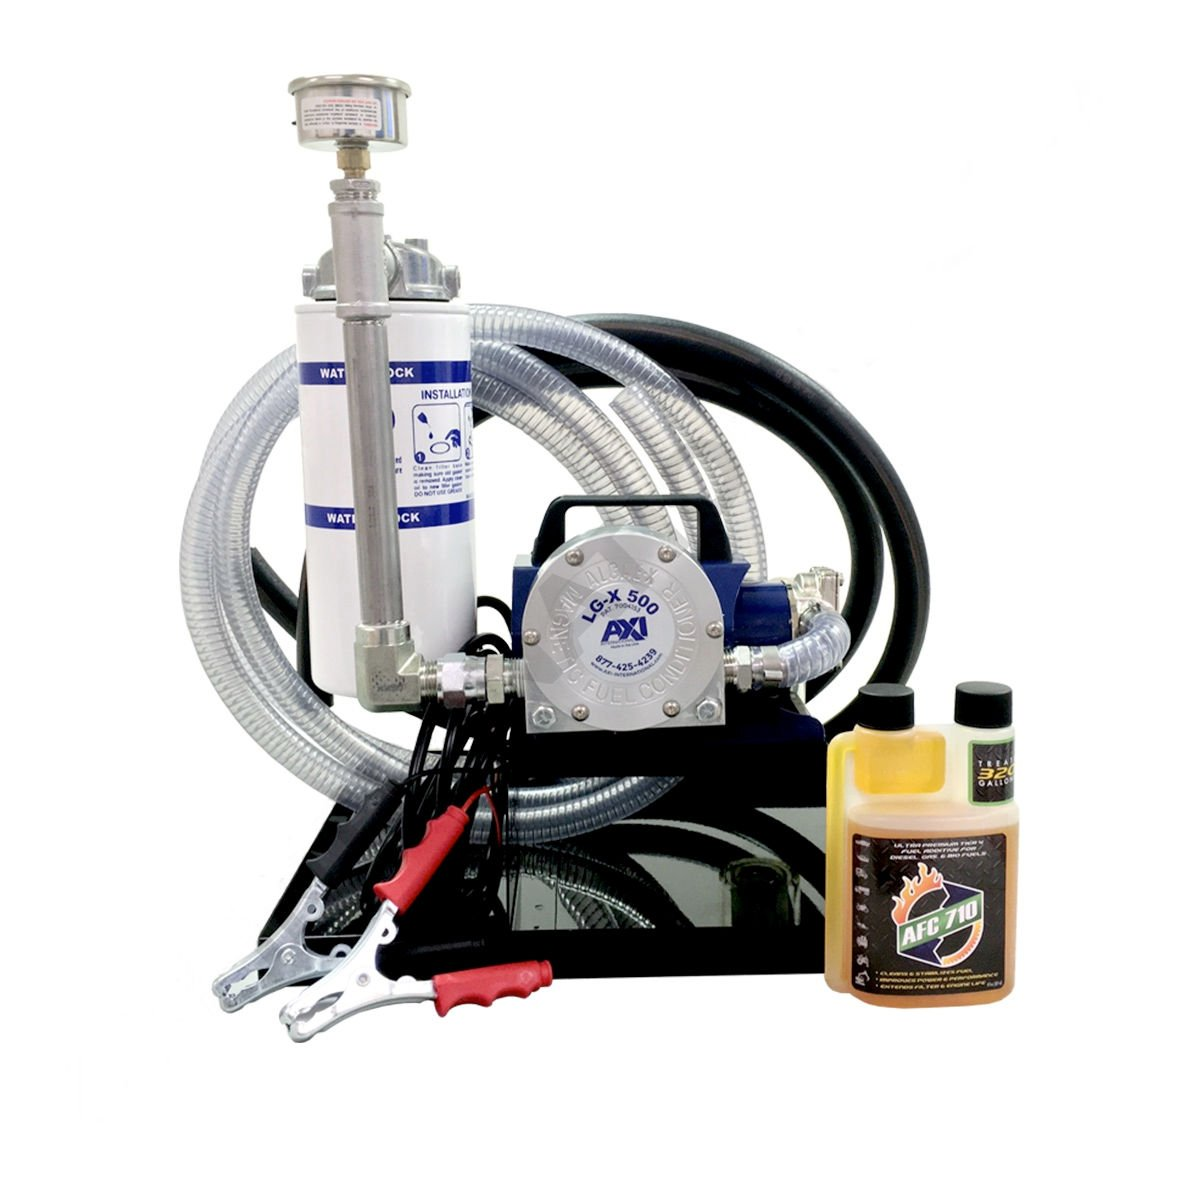 AXI International TK 240-XT 4GPM Portable 12VDC Fuel Polishing System//Kit Steel Includes DripTray//Hoses /& Clamps//WBS-3 Filter//AFC-710//LG-X 500//Pressure Gauge